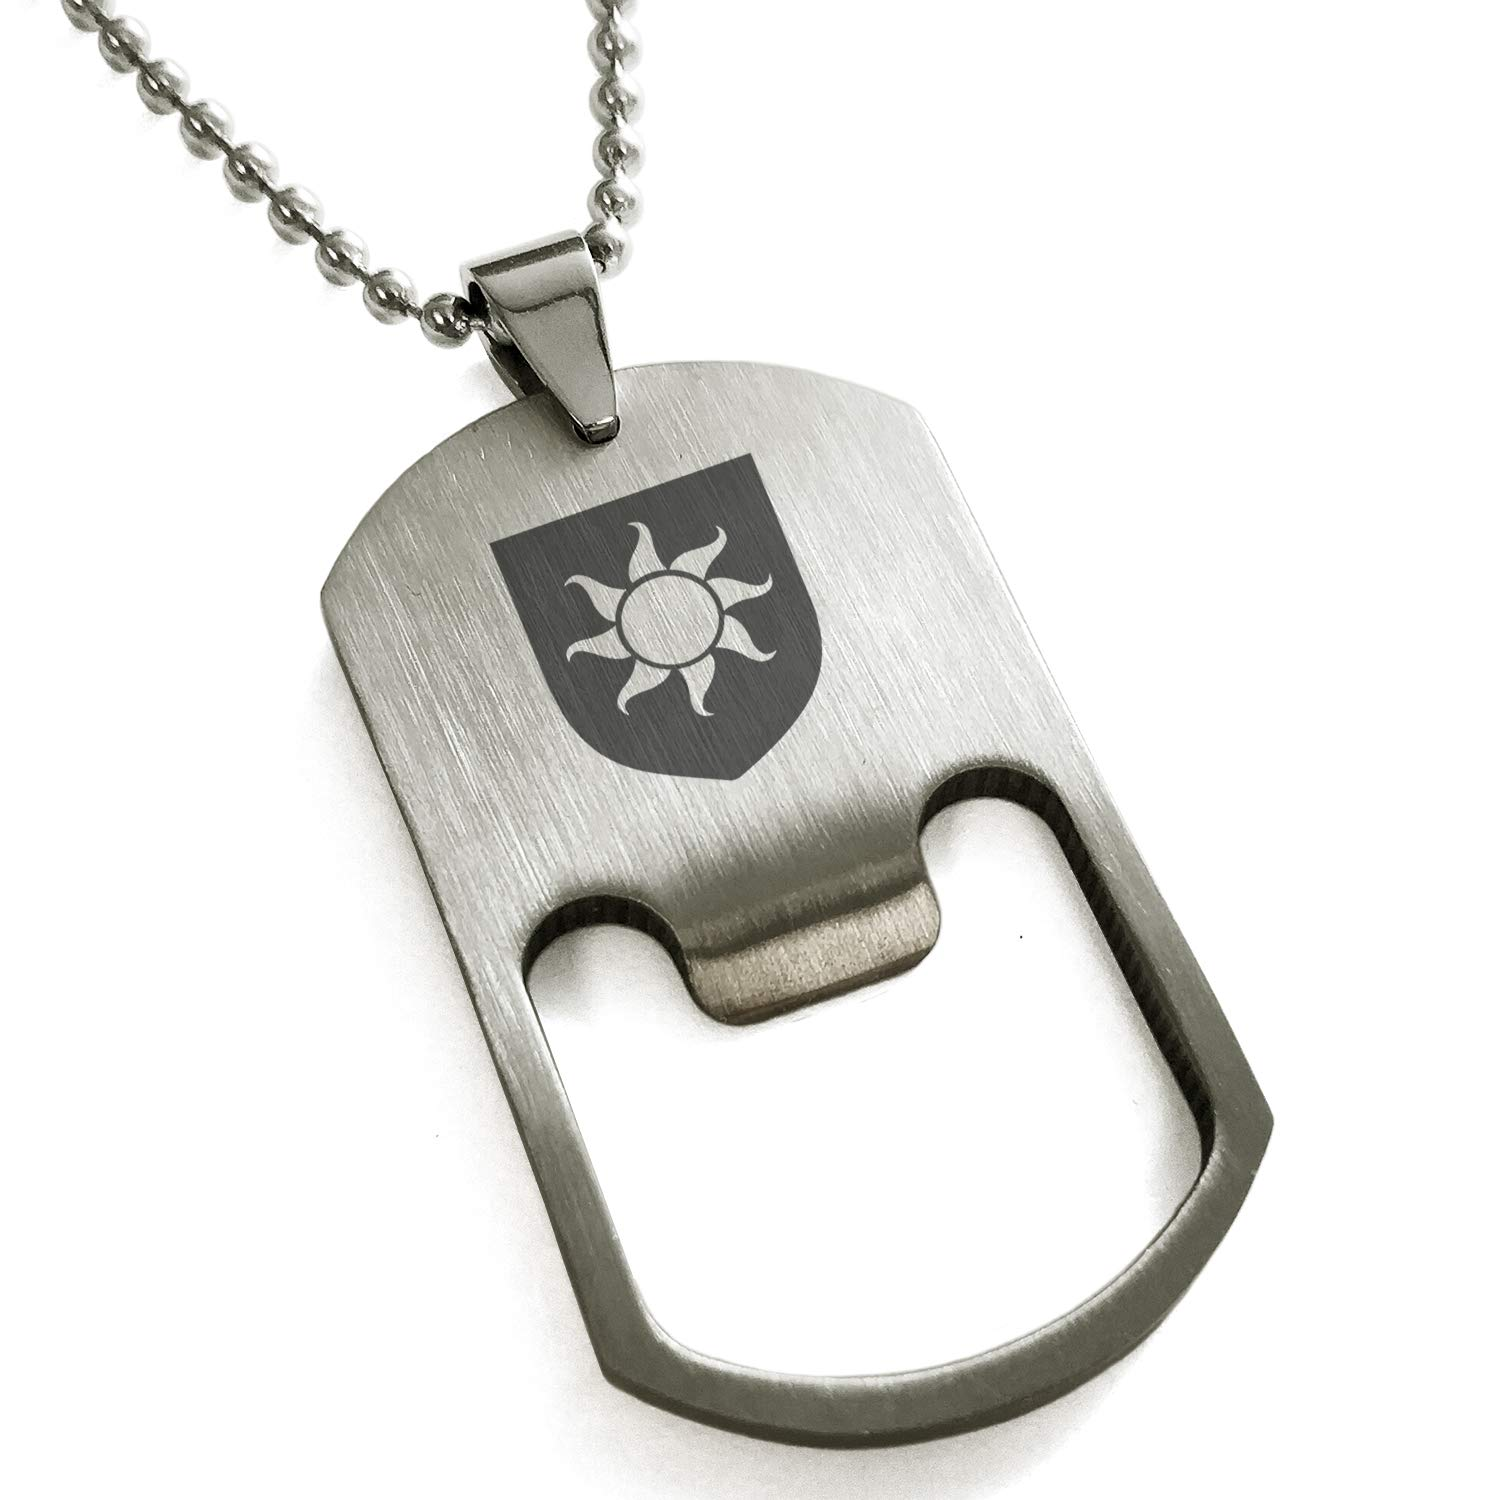 Tioneer Stainless Steel Sun Splendor Coat of Arms Shield Engraved Bottle Opener Dog Tag Pendant Necklace by Tioneer (Image #1)